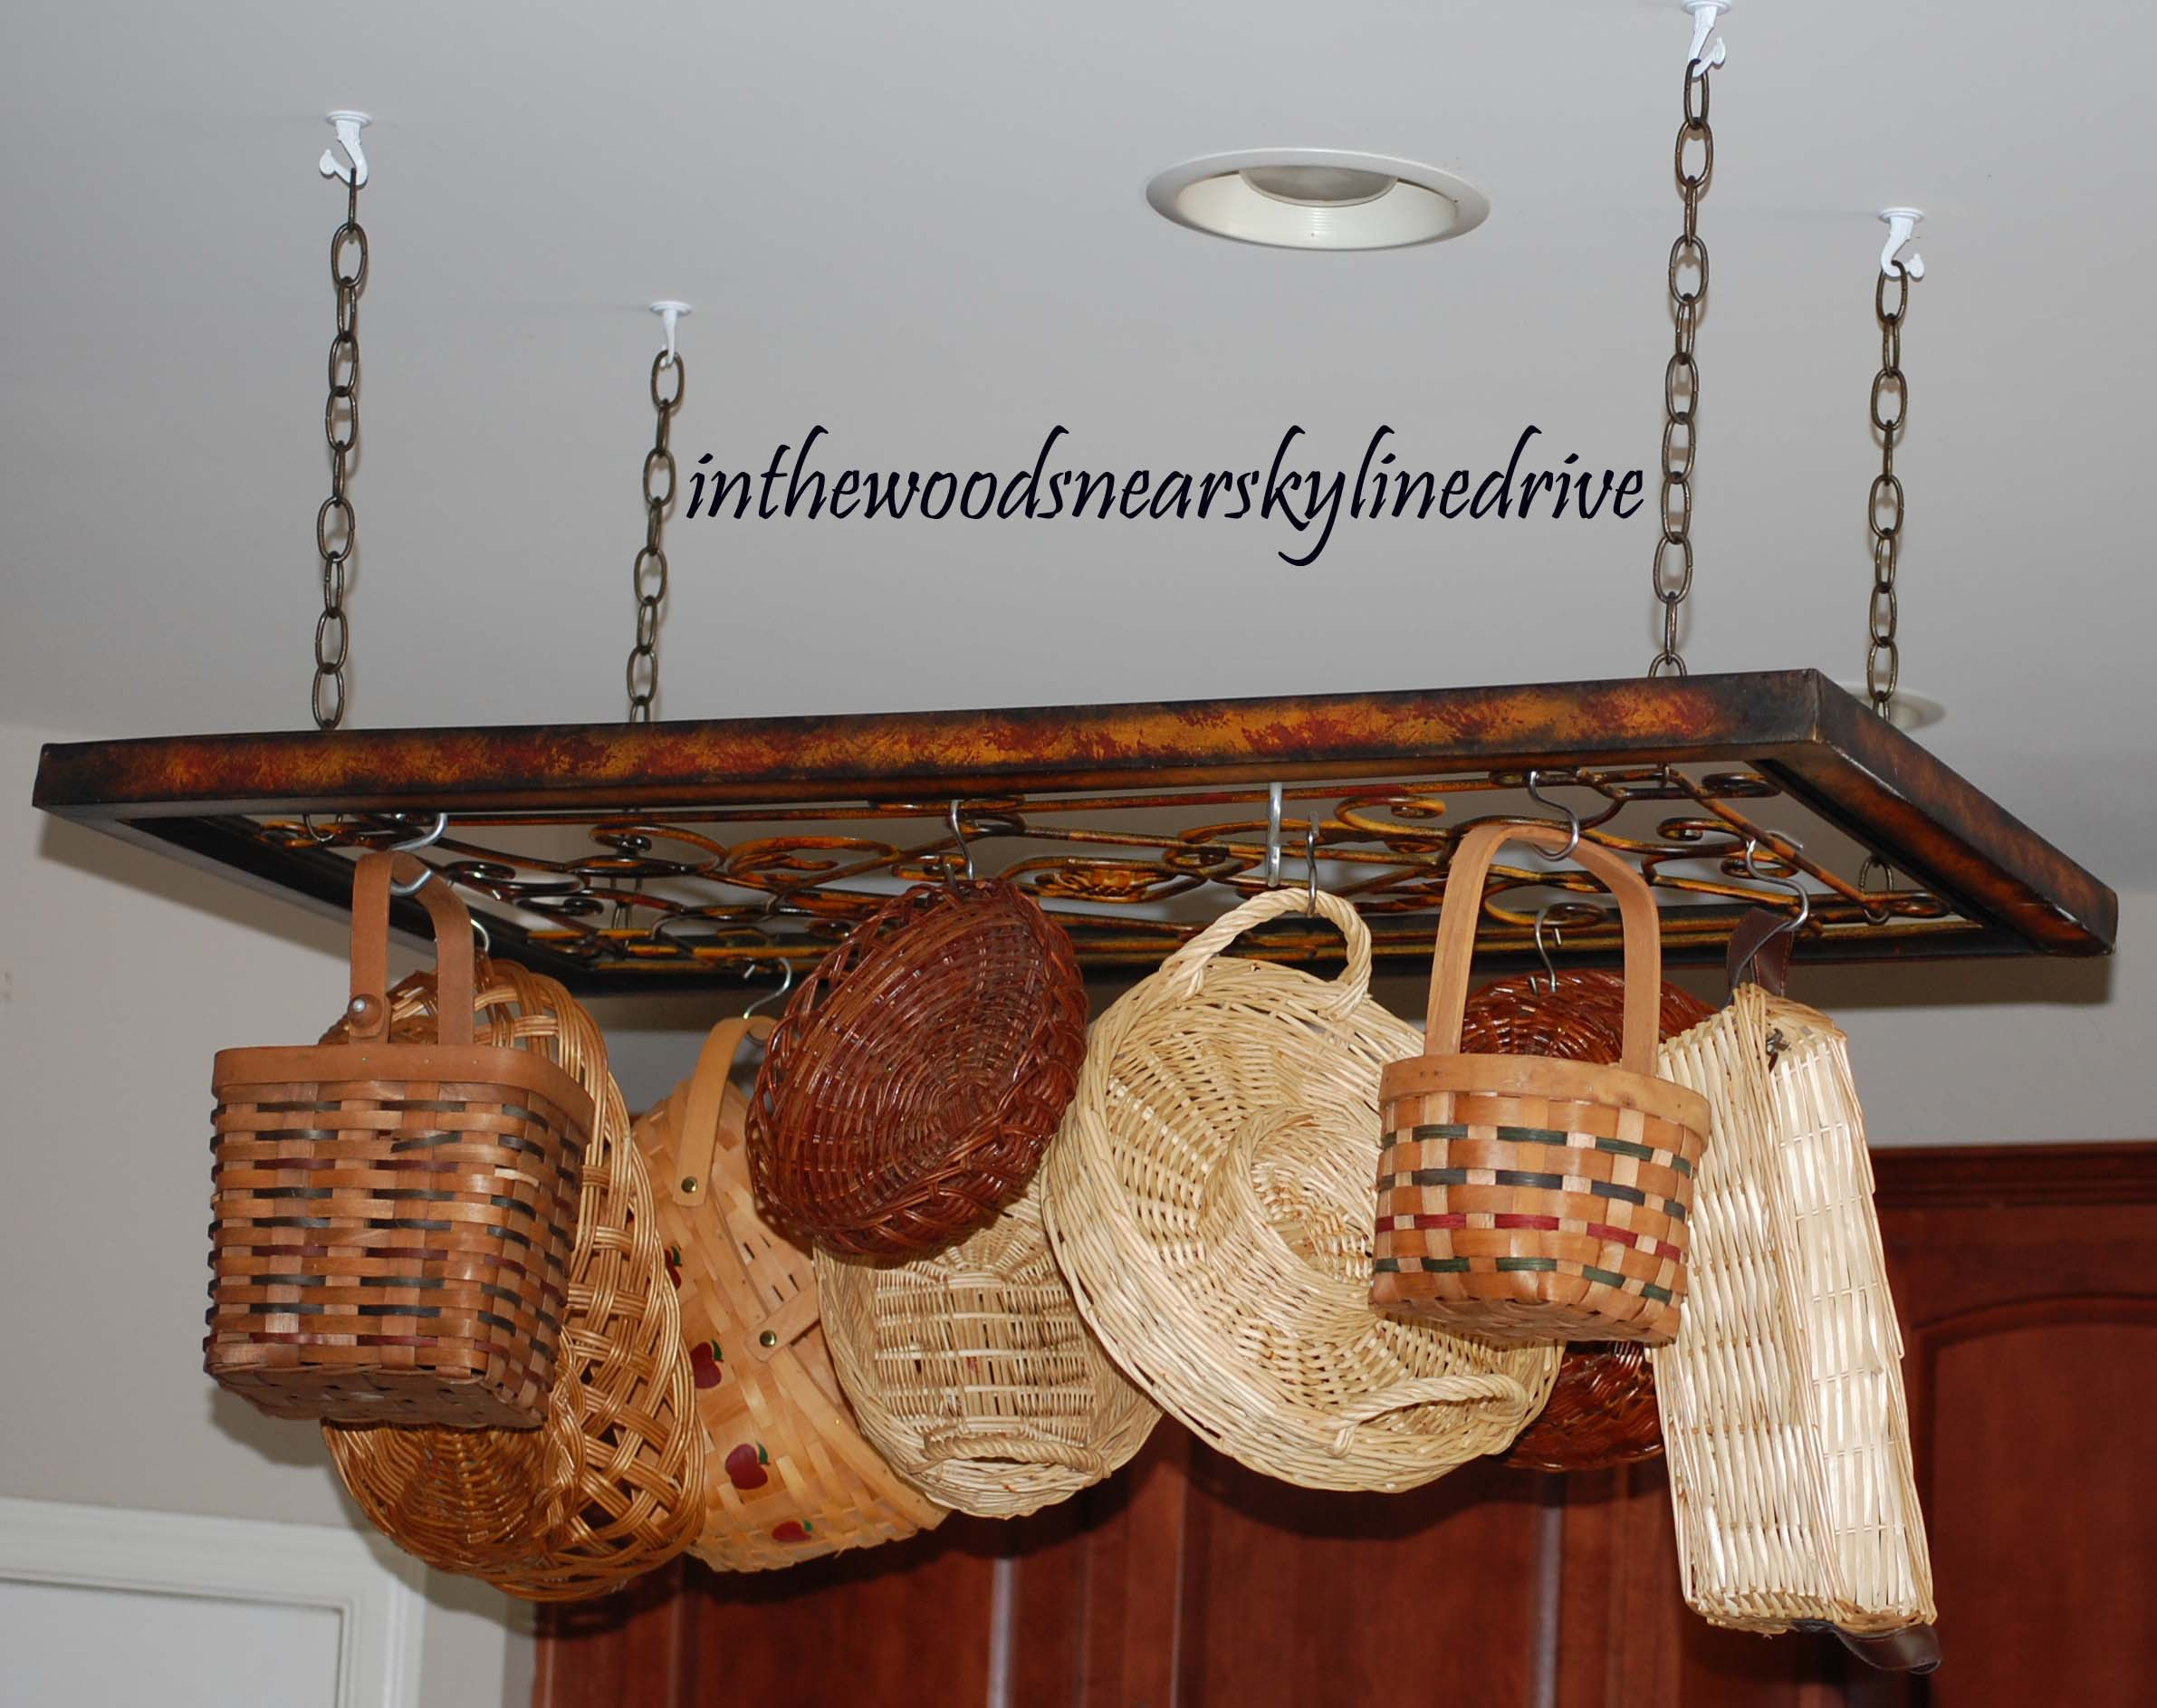 Creative Pot Rack Ideas and My Interpretation | In the Woods ...